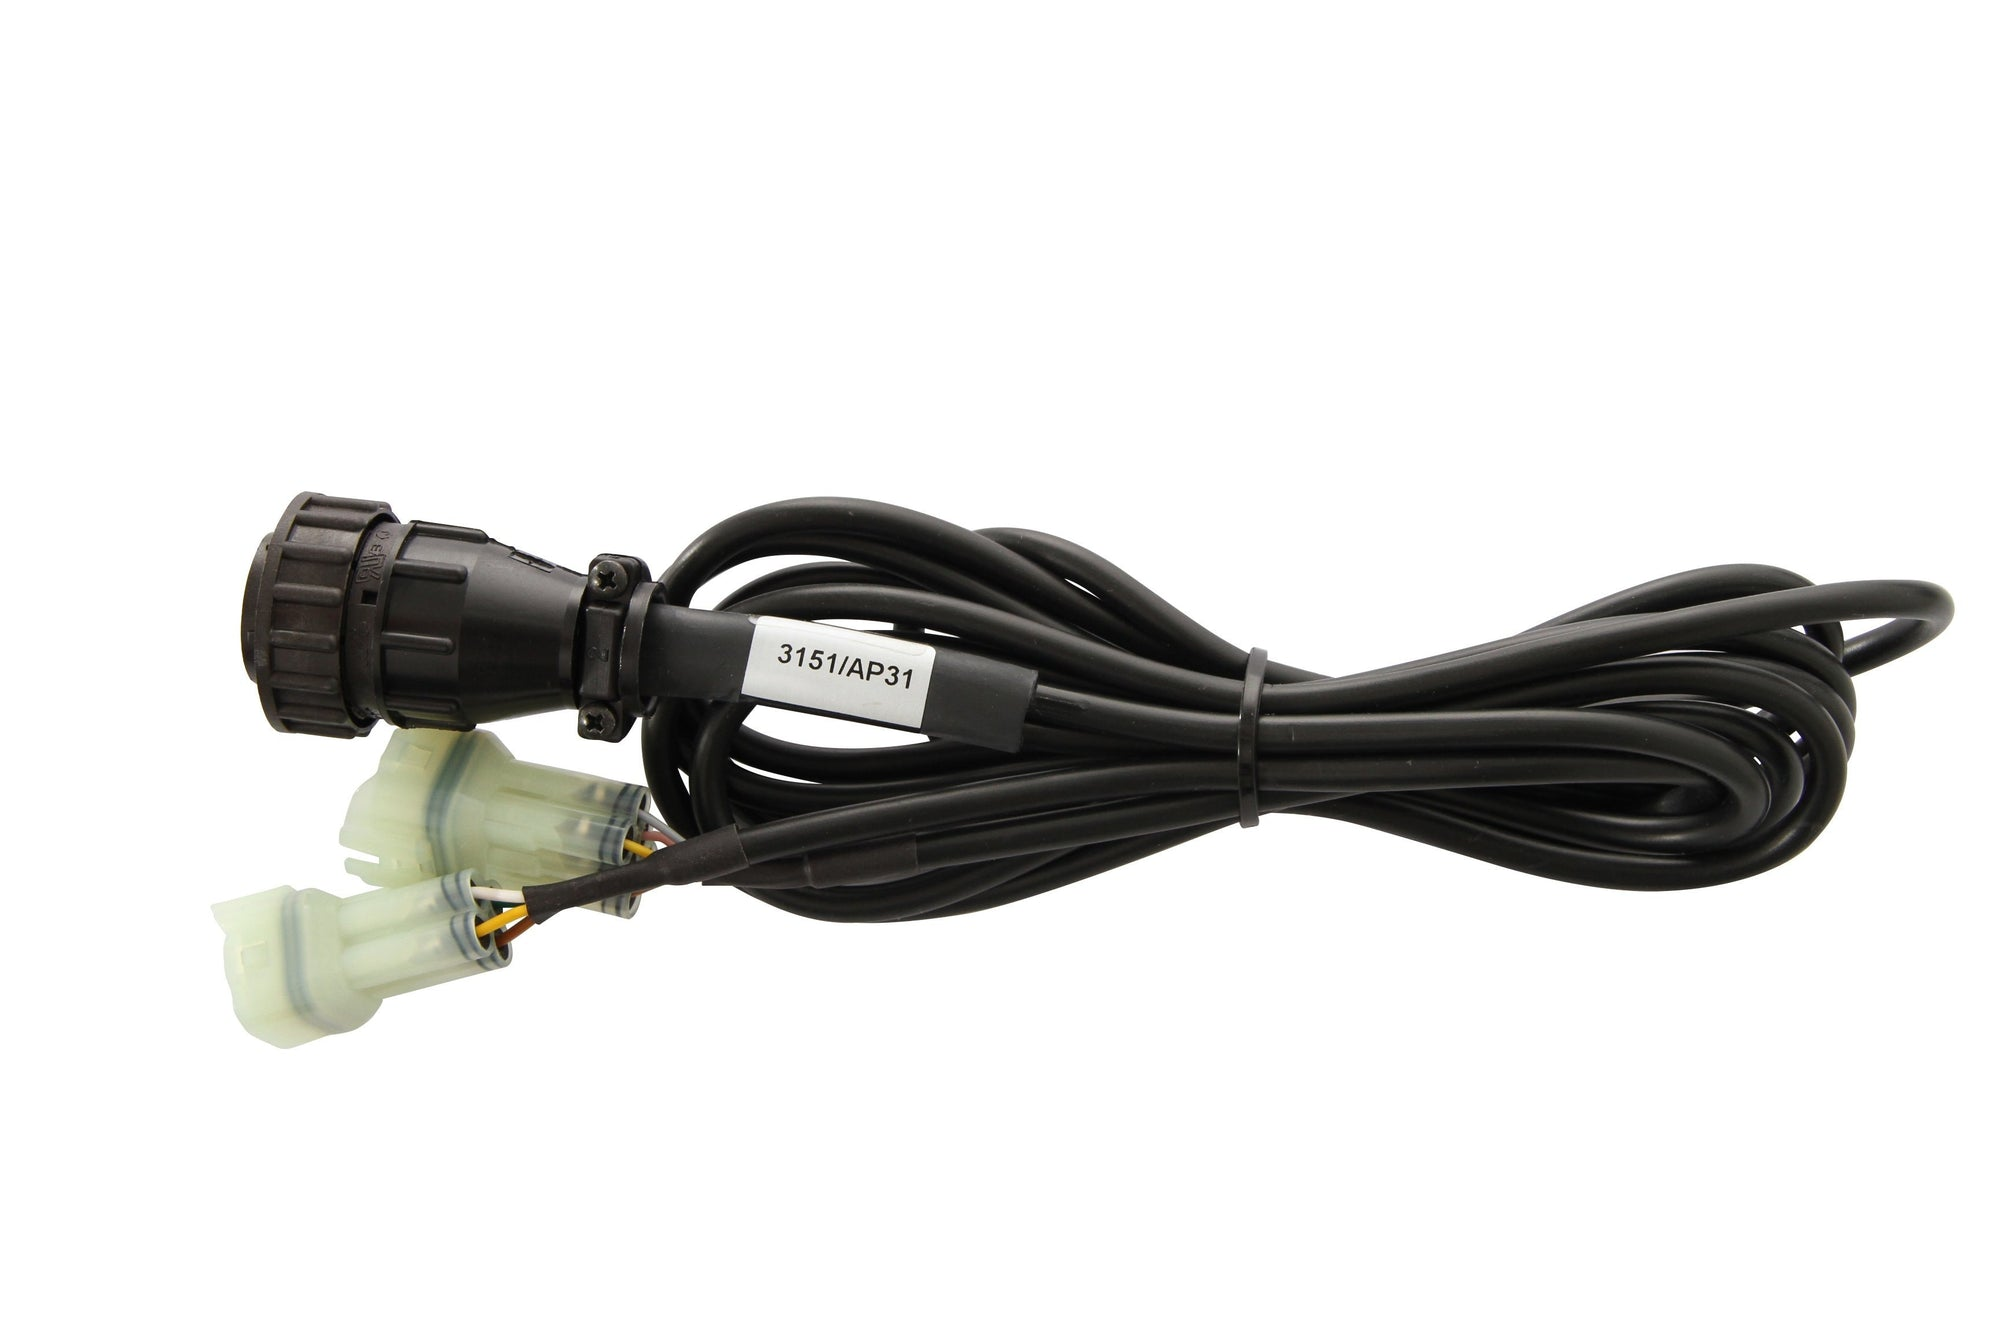 TEXA-BIKE-3903439-Generic-KAWASAKI-cable-from-2010-3151-AP31